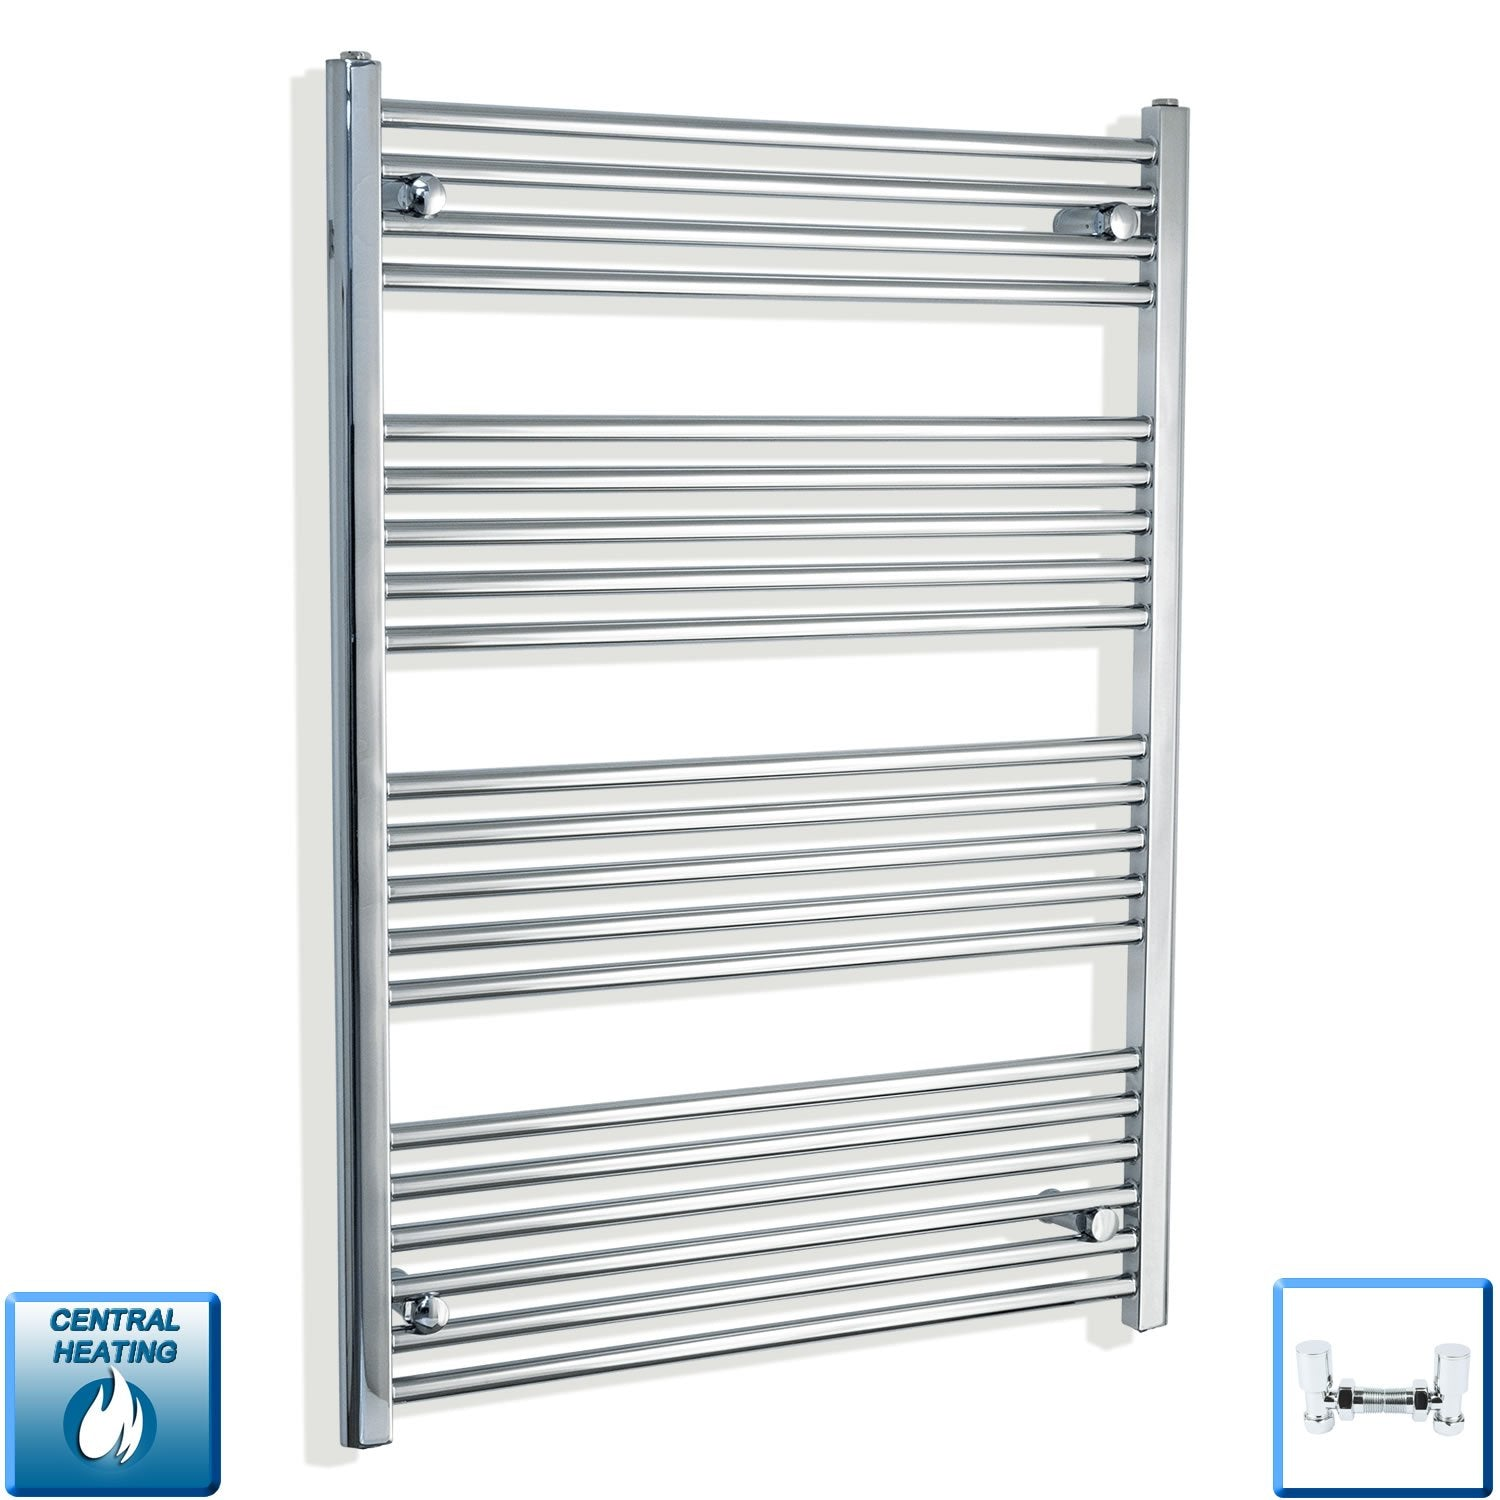 750mm Wide 1100mm High Curved Chrome Heated Towel Rail Radiator HTR,With Angled Valve